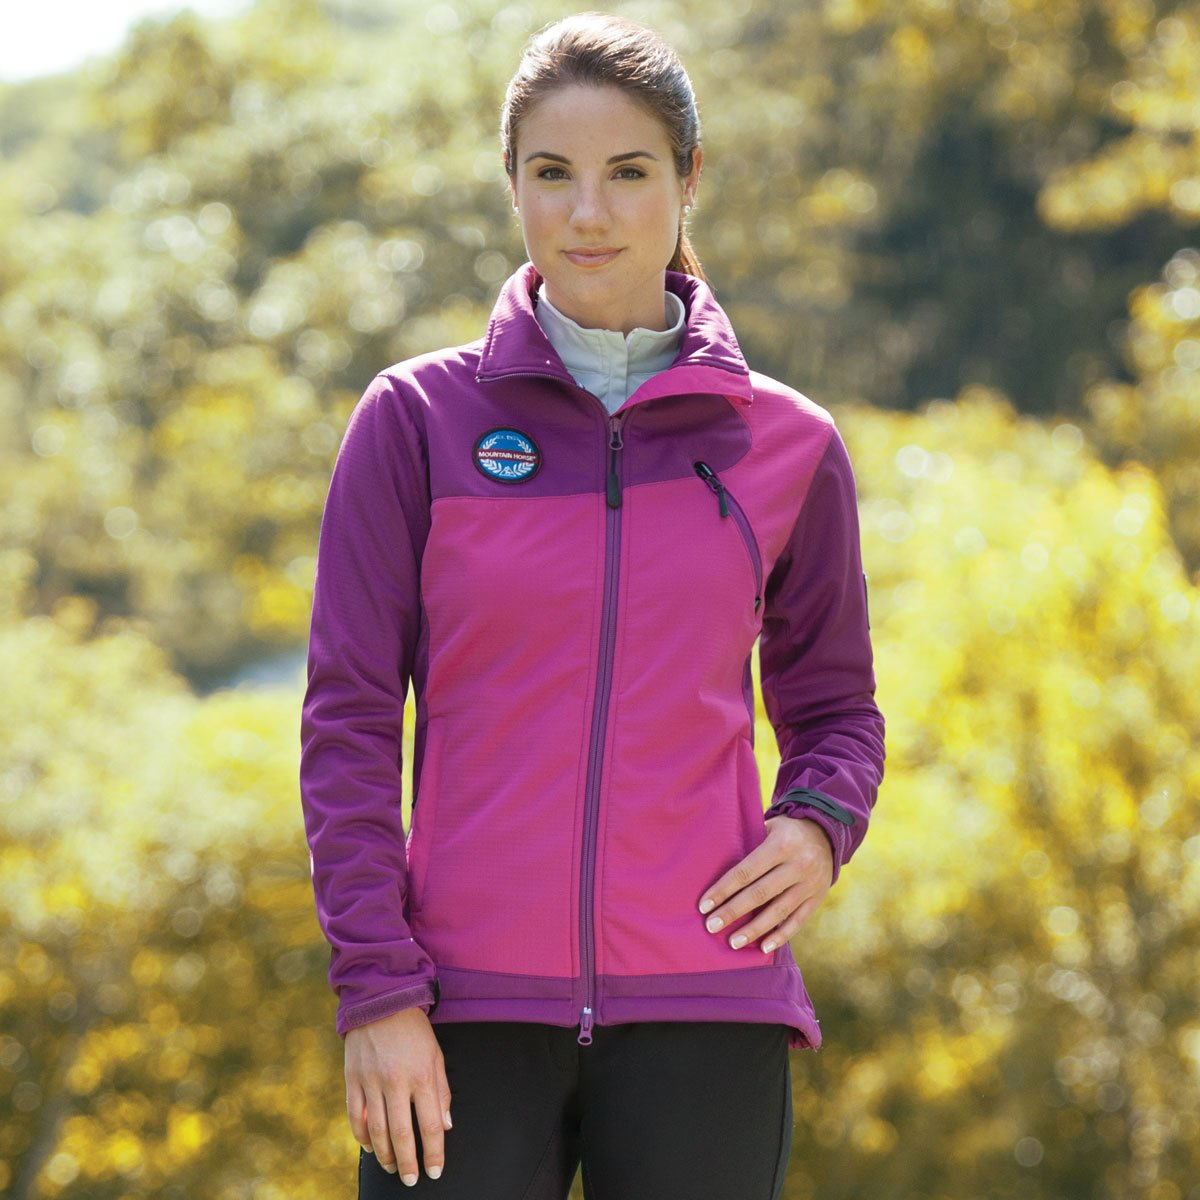 Mountain Horse Women's Cortina Softshell Jacket Purple Large US by Mountain Horse